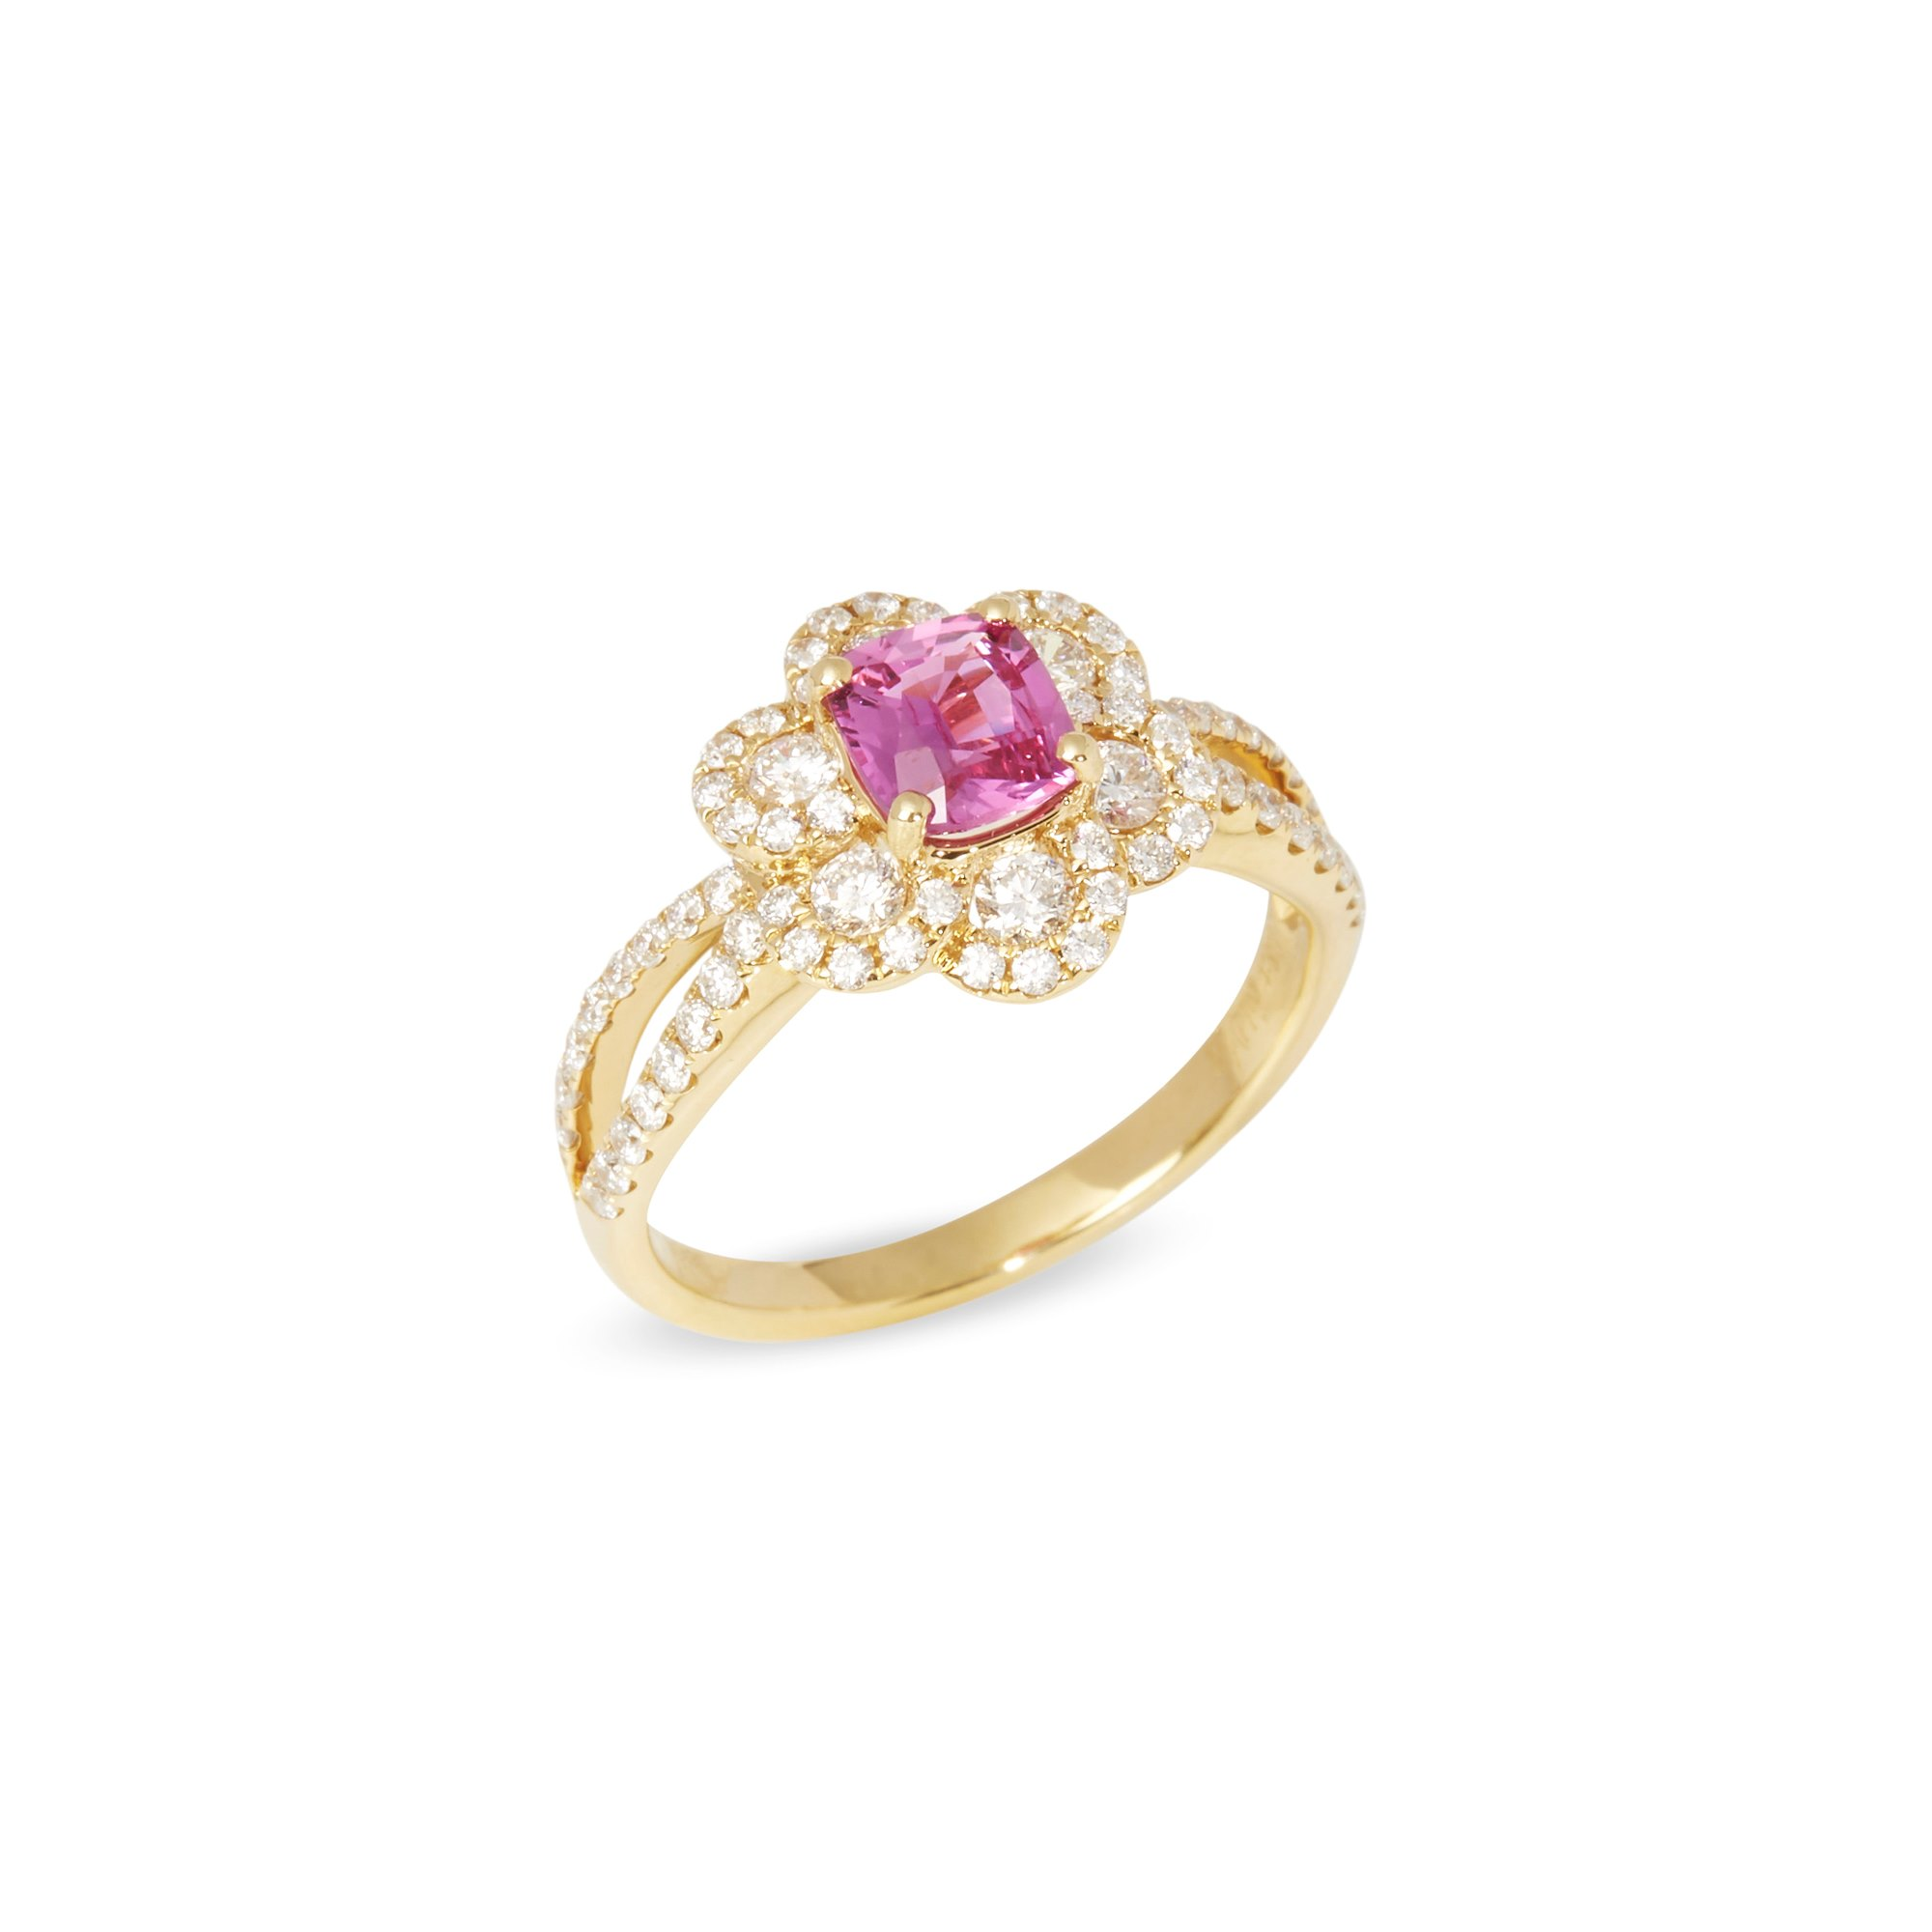 David Jerome 18k Yellow Gold Pink Sapphire and Diamond Ring